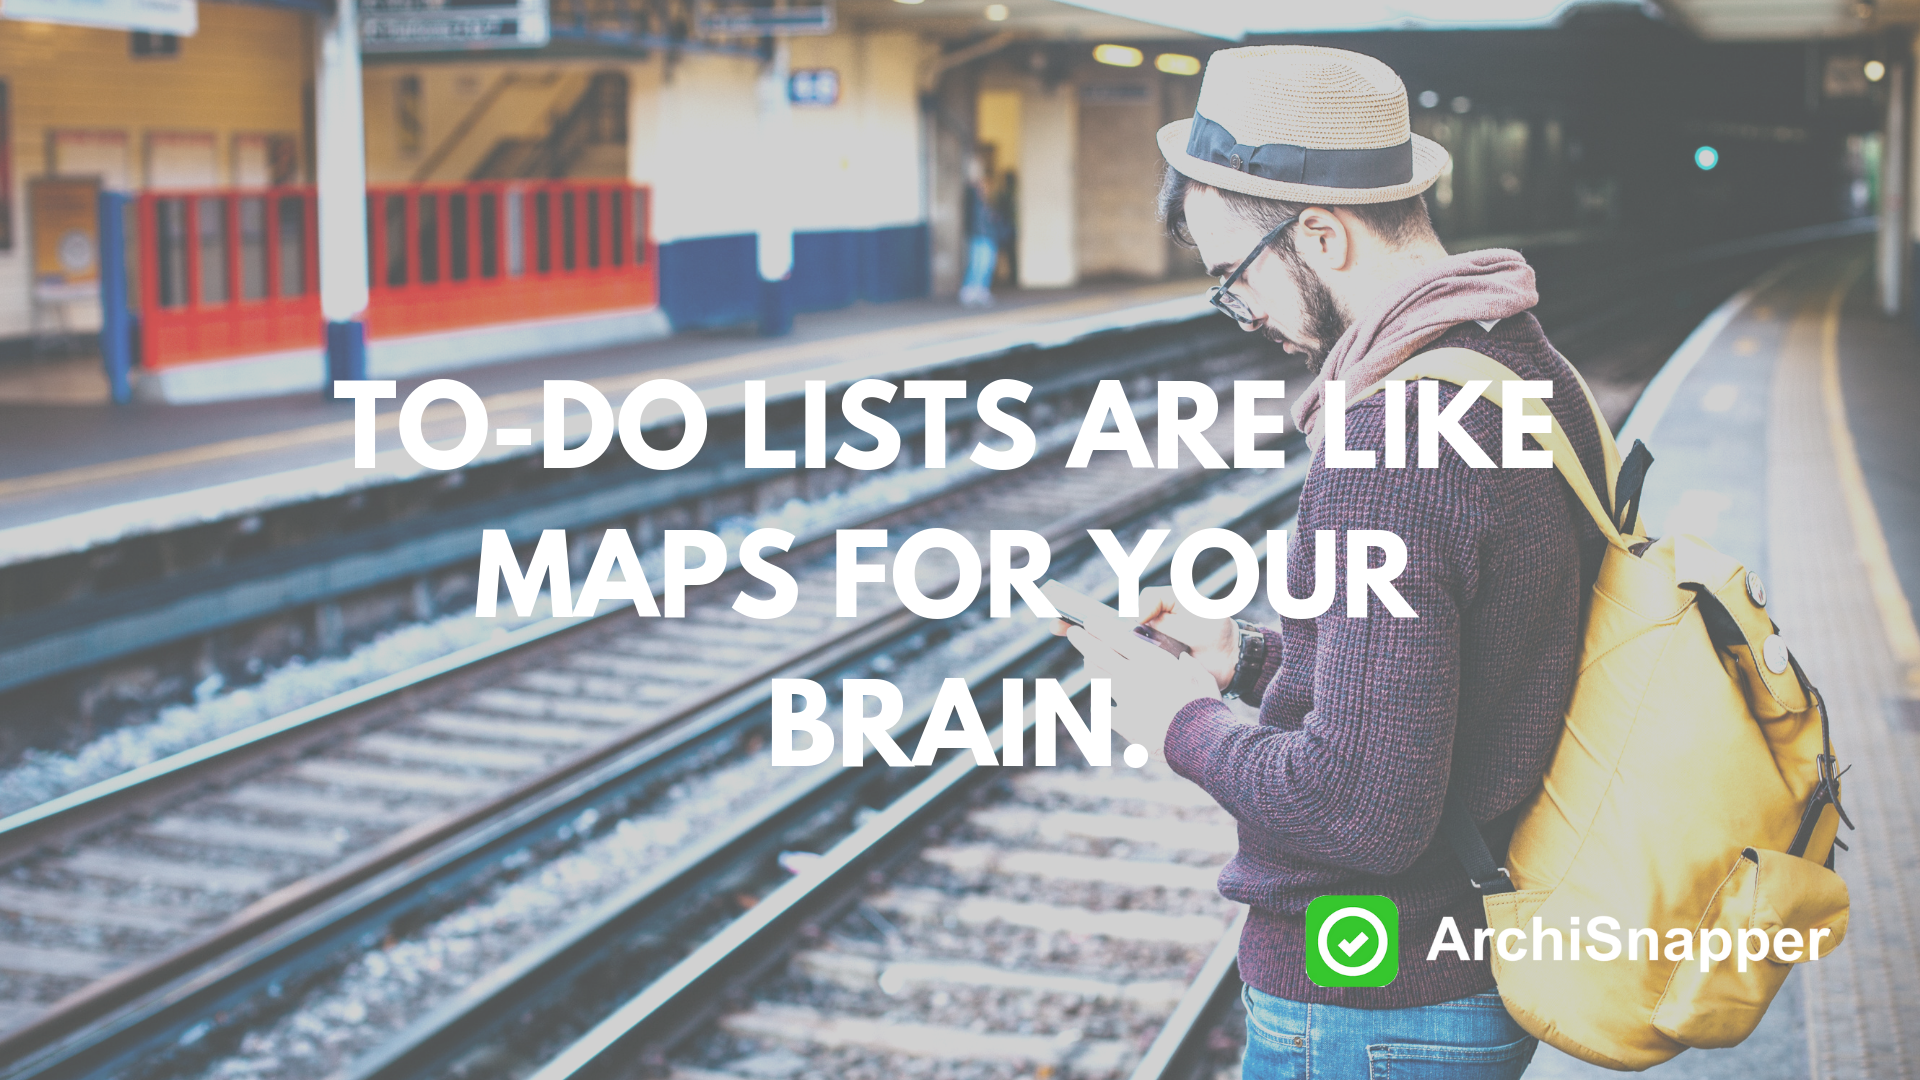 To-do lists are like maps for your brain | Archisnapper